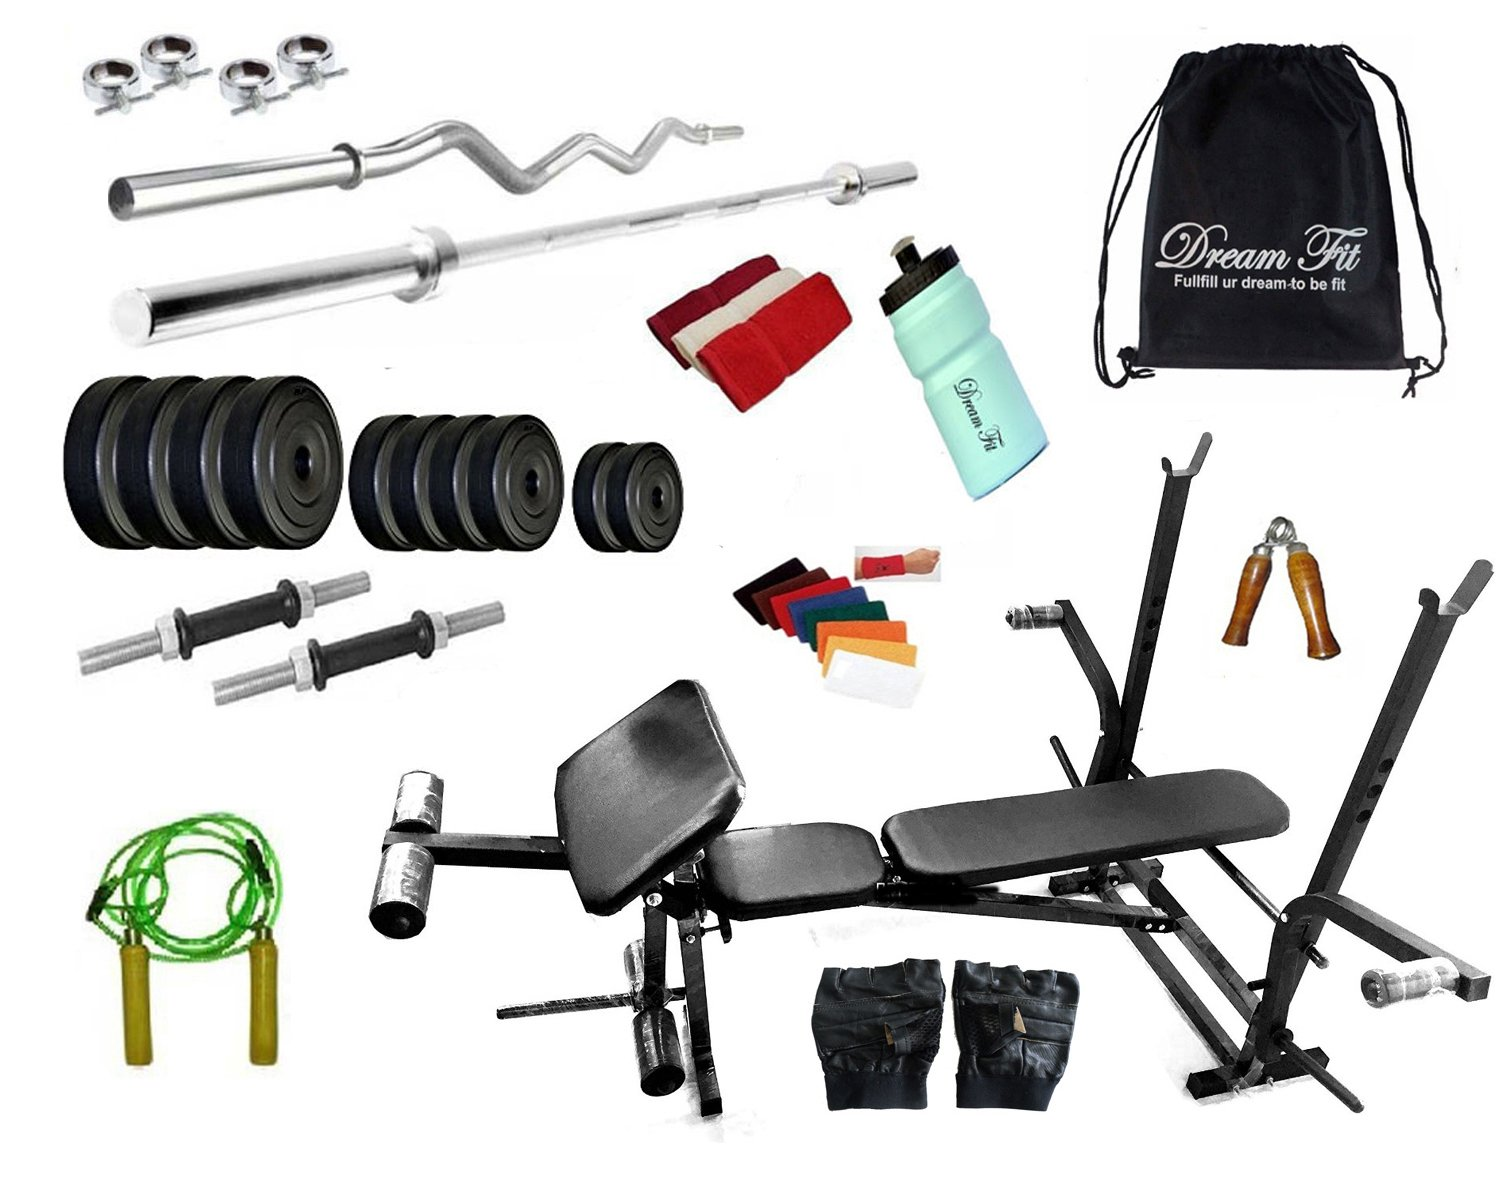 ddd303fdca Buy DREAMFIT 20 KG Home Gym with 7 in 1 Bench